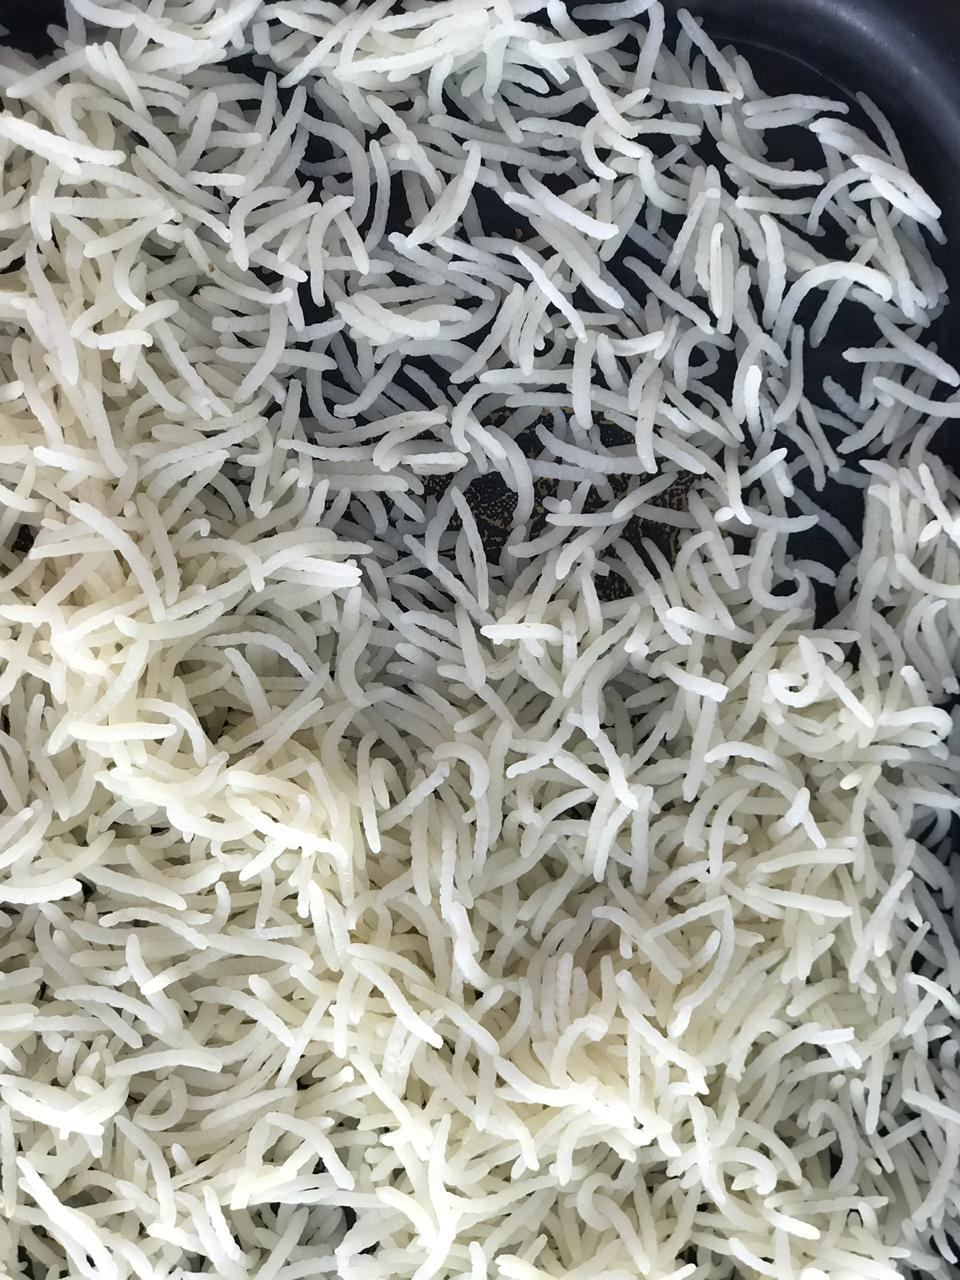 Pakistan Long Grain Rice 1003